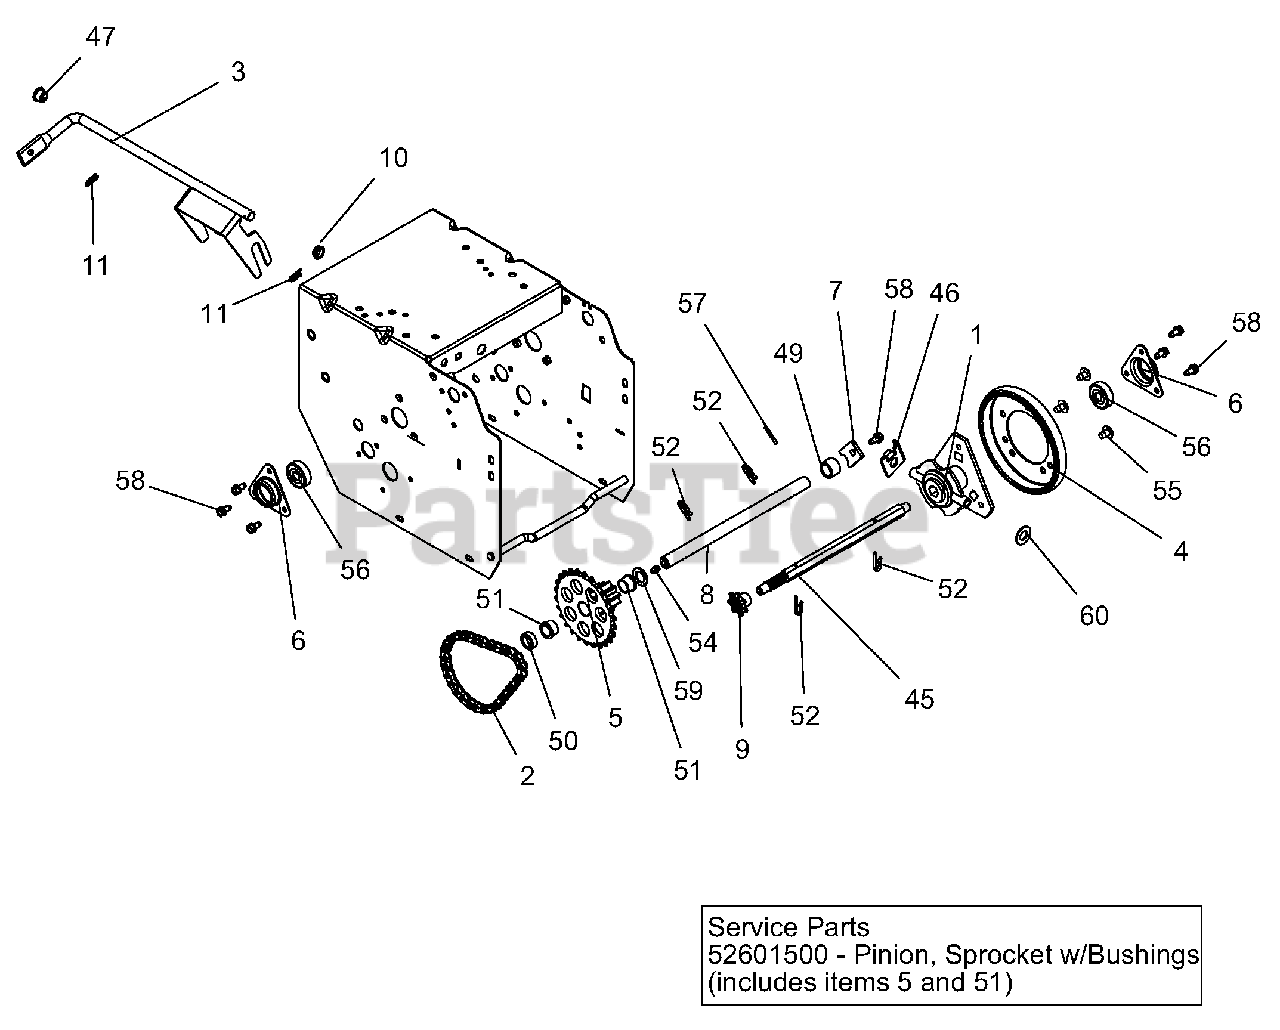 Ariens Parts on the Friction Drive Diagram for 921030